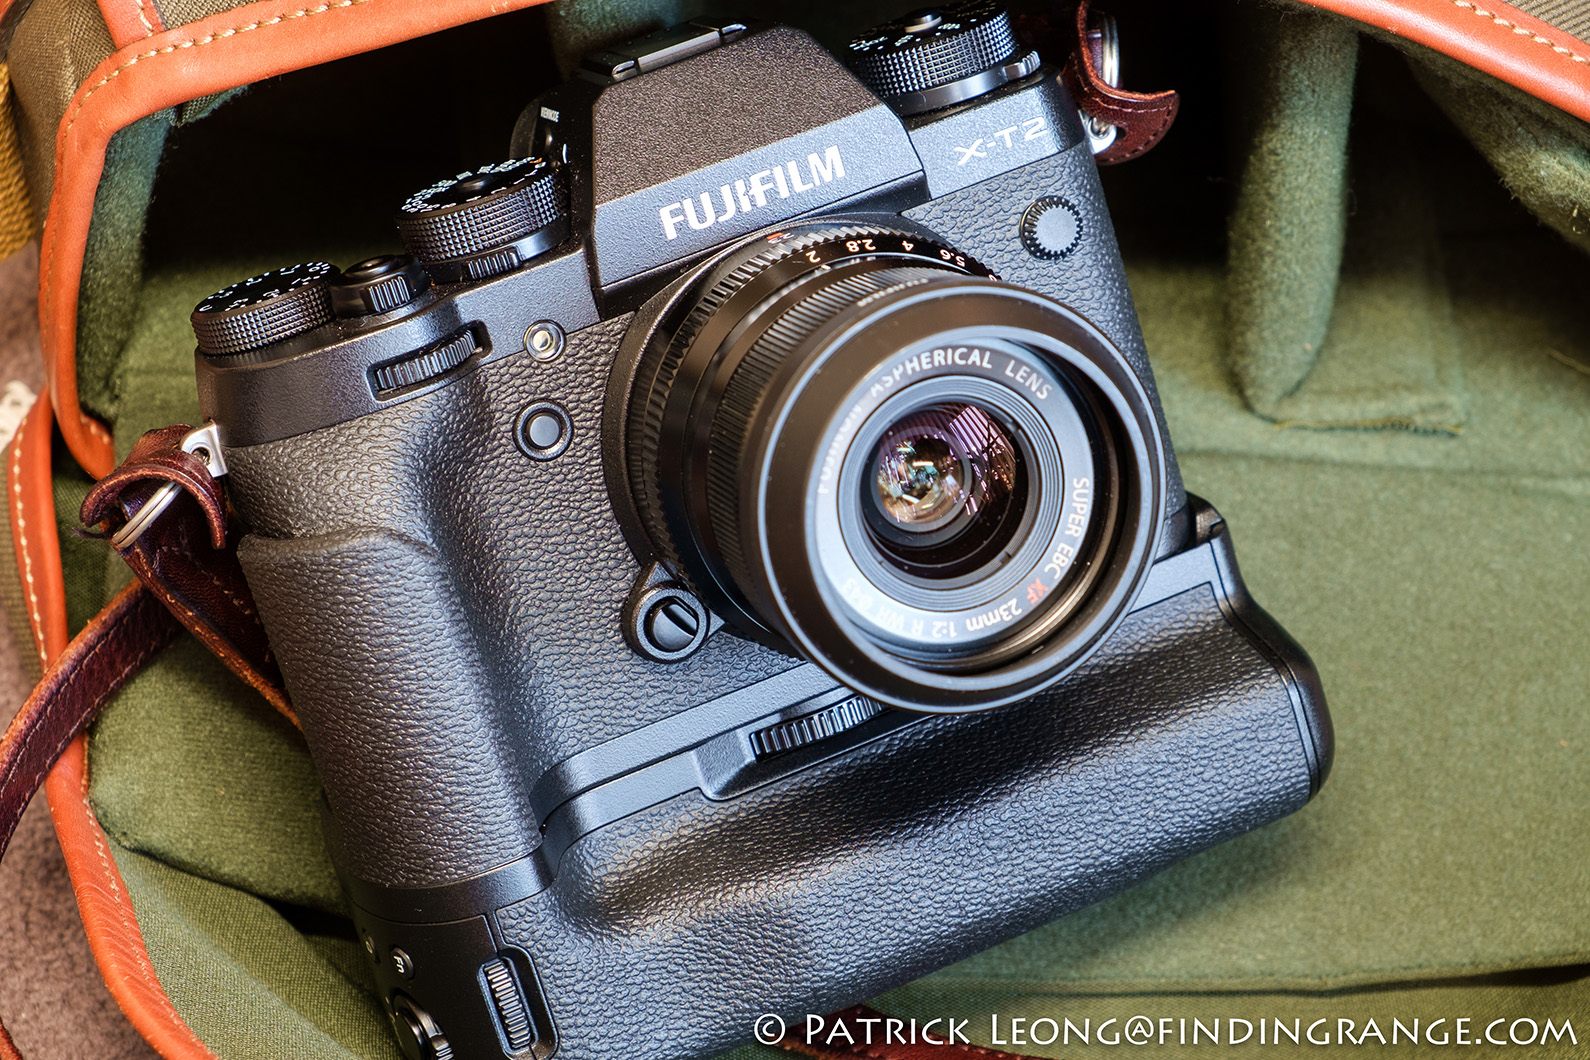 fuji-x-t2-xf-23mm-f2-r-wr-lens-review-vpb-xt2-vertical-booster-grip-1